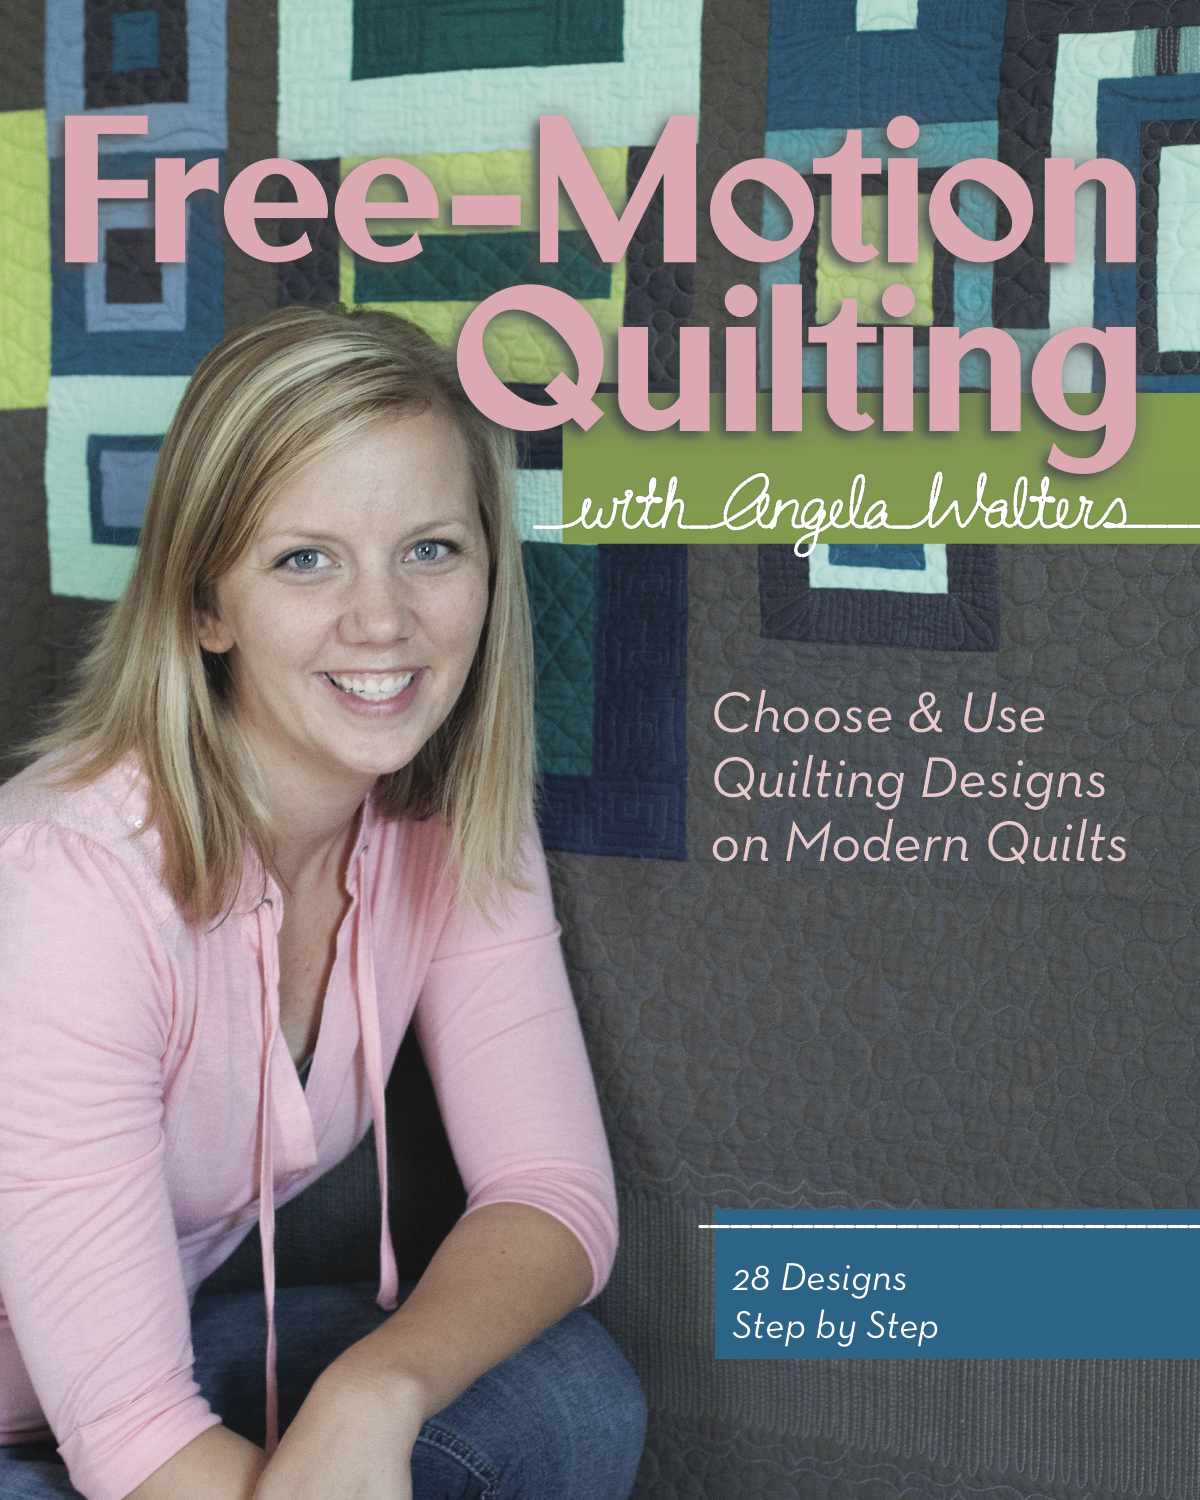 10860 Quilt Along: Quilting Tips from a Pro